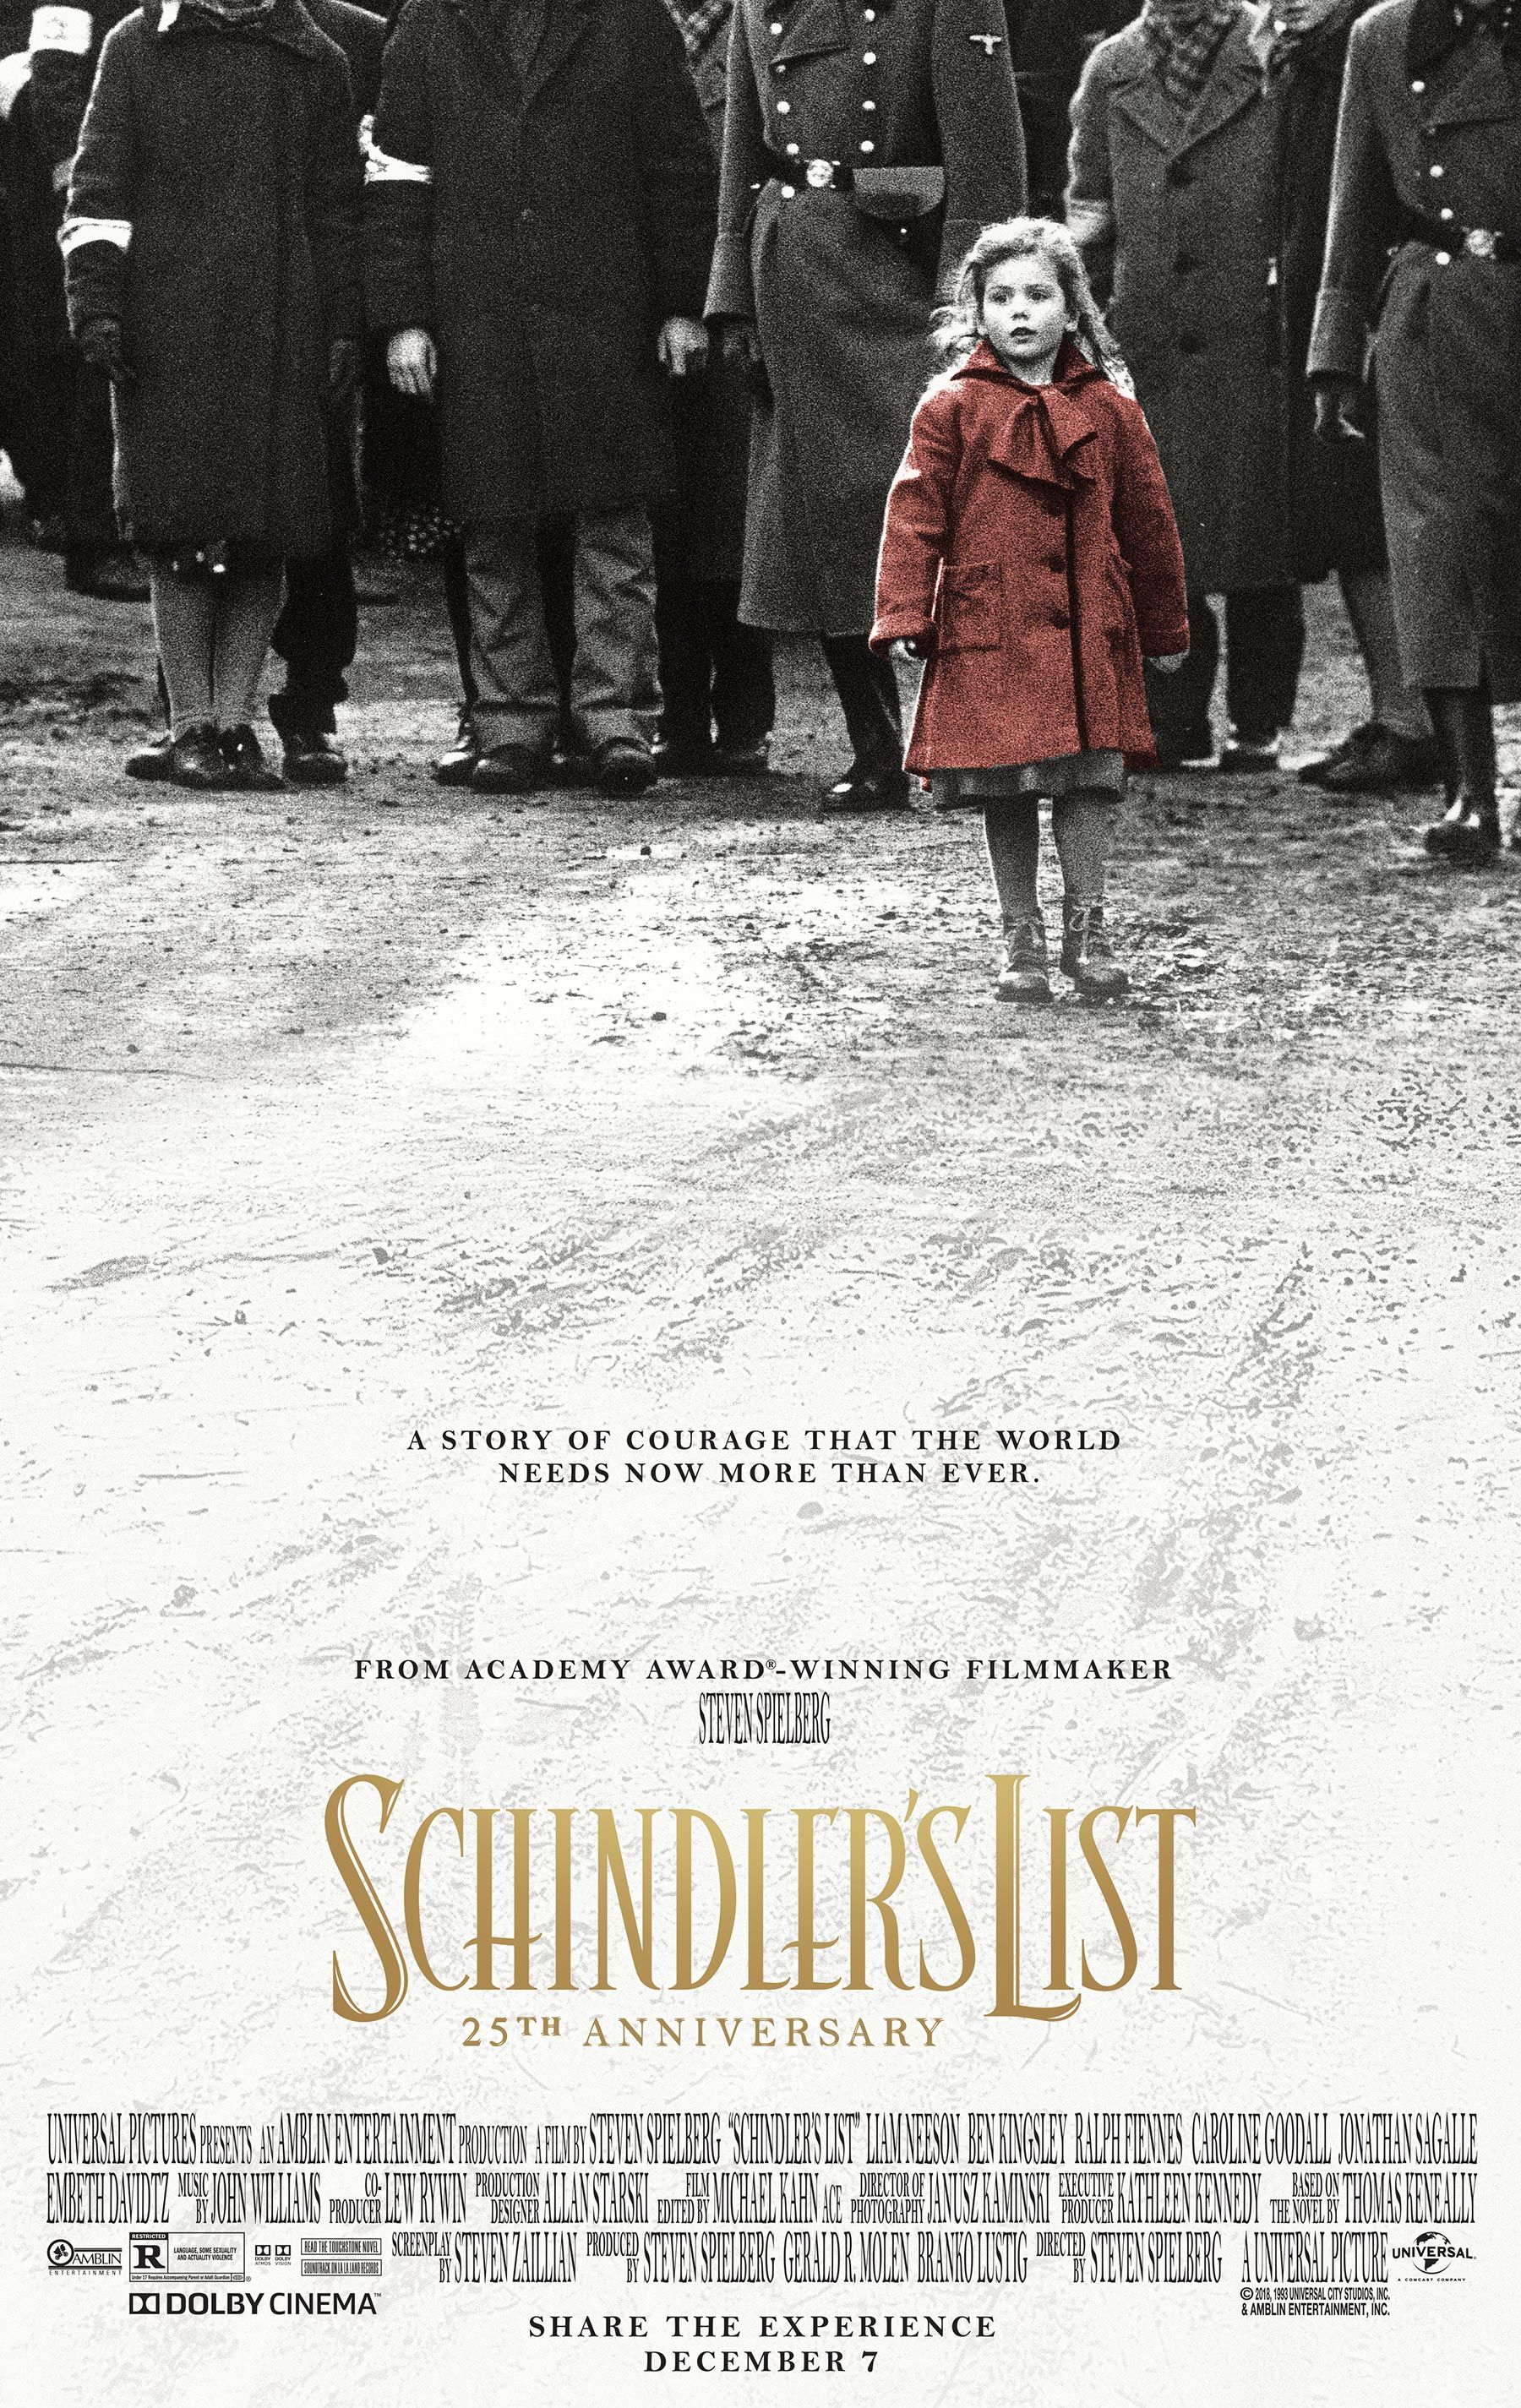 'Schindler's List' will return to theaters for its 25th anniversary